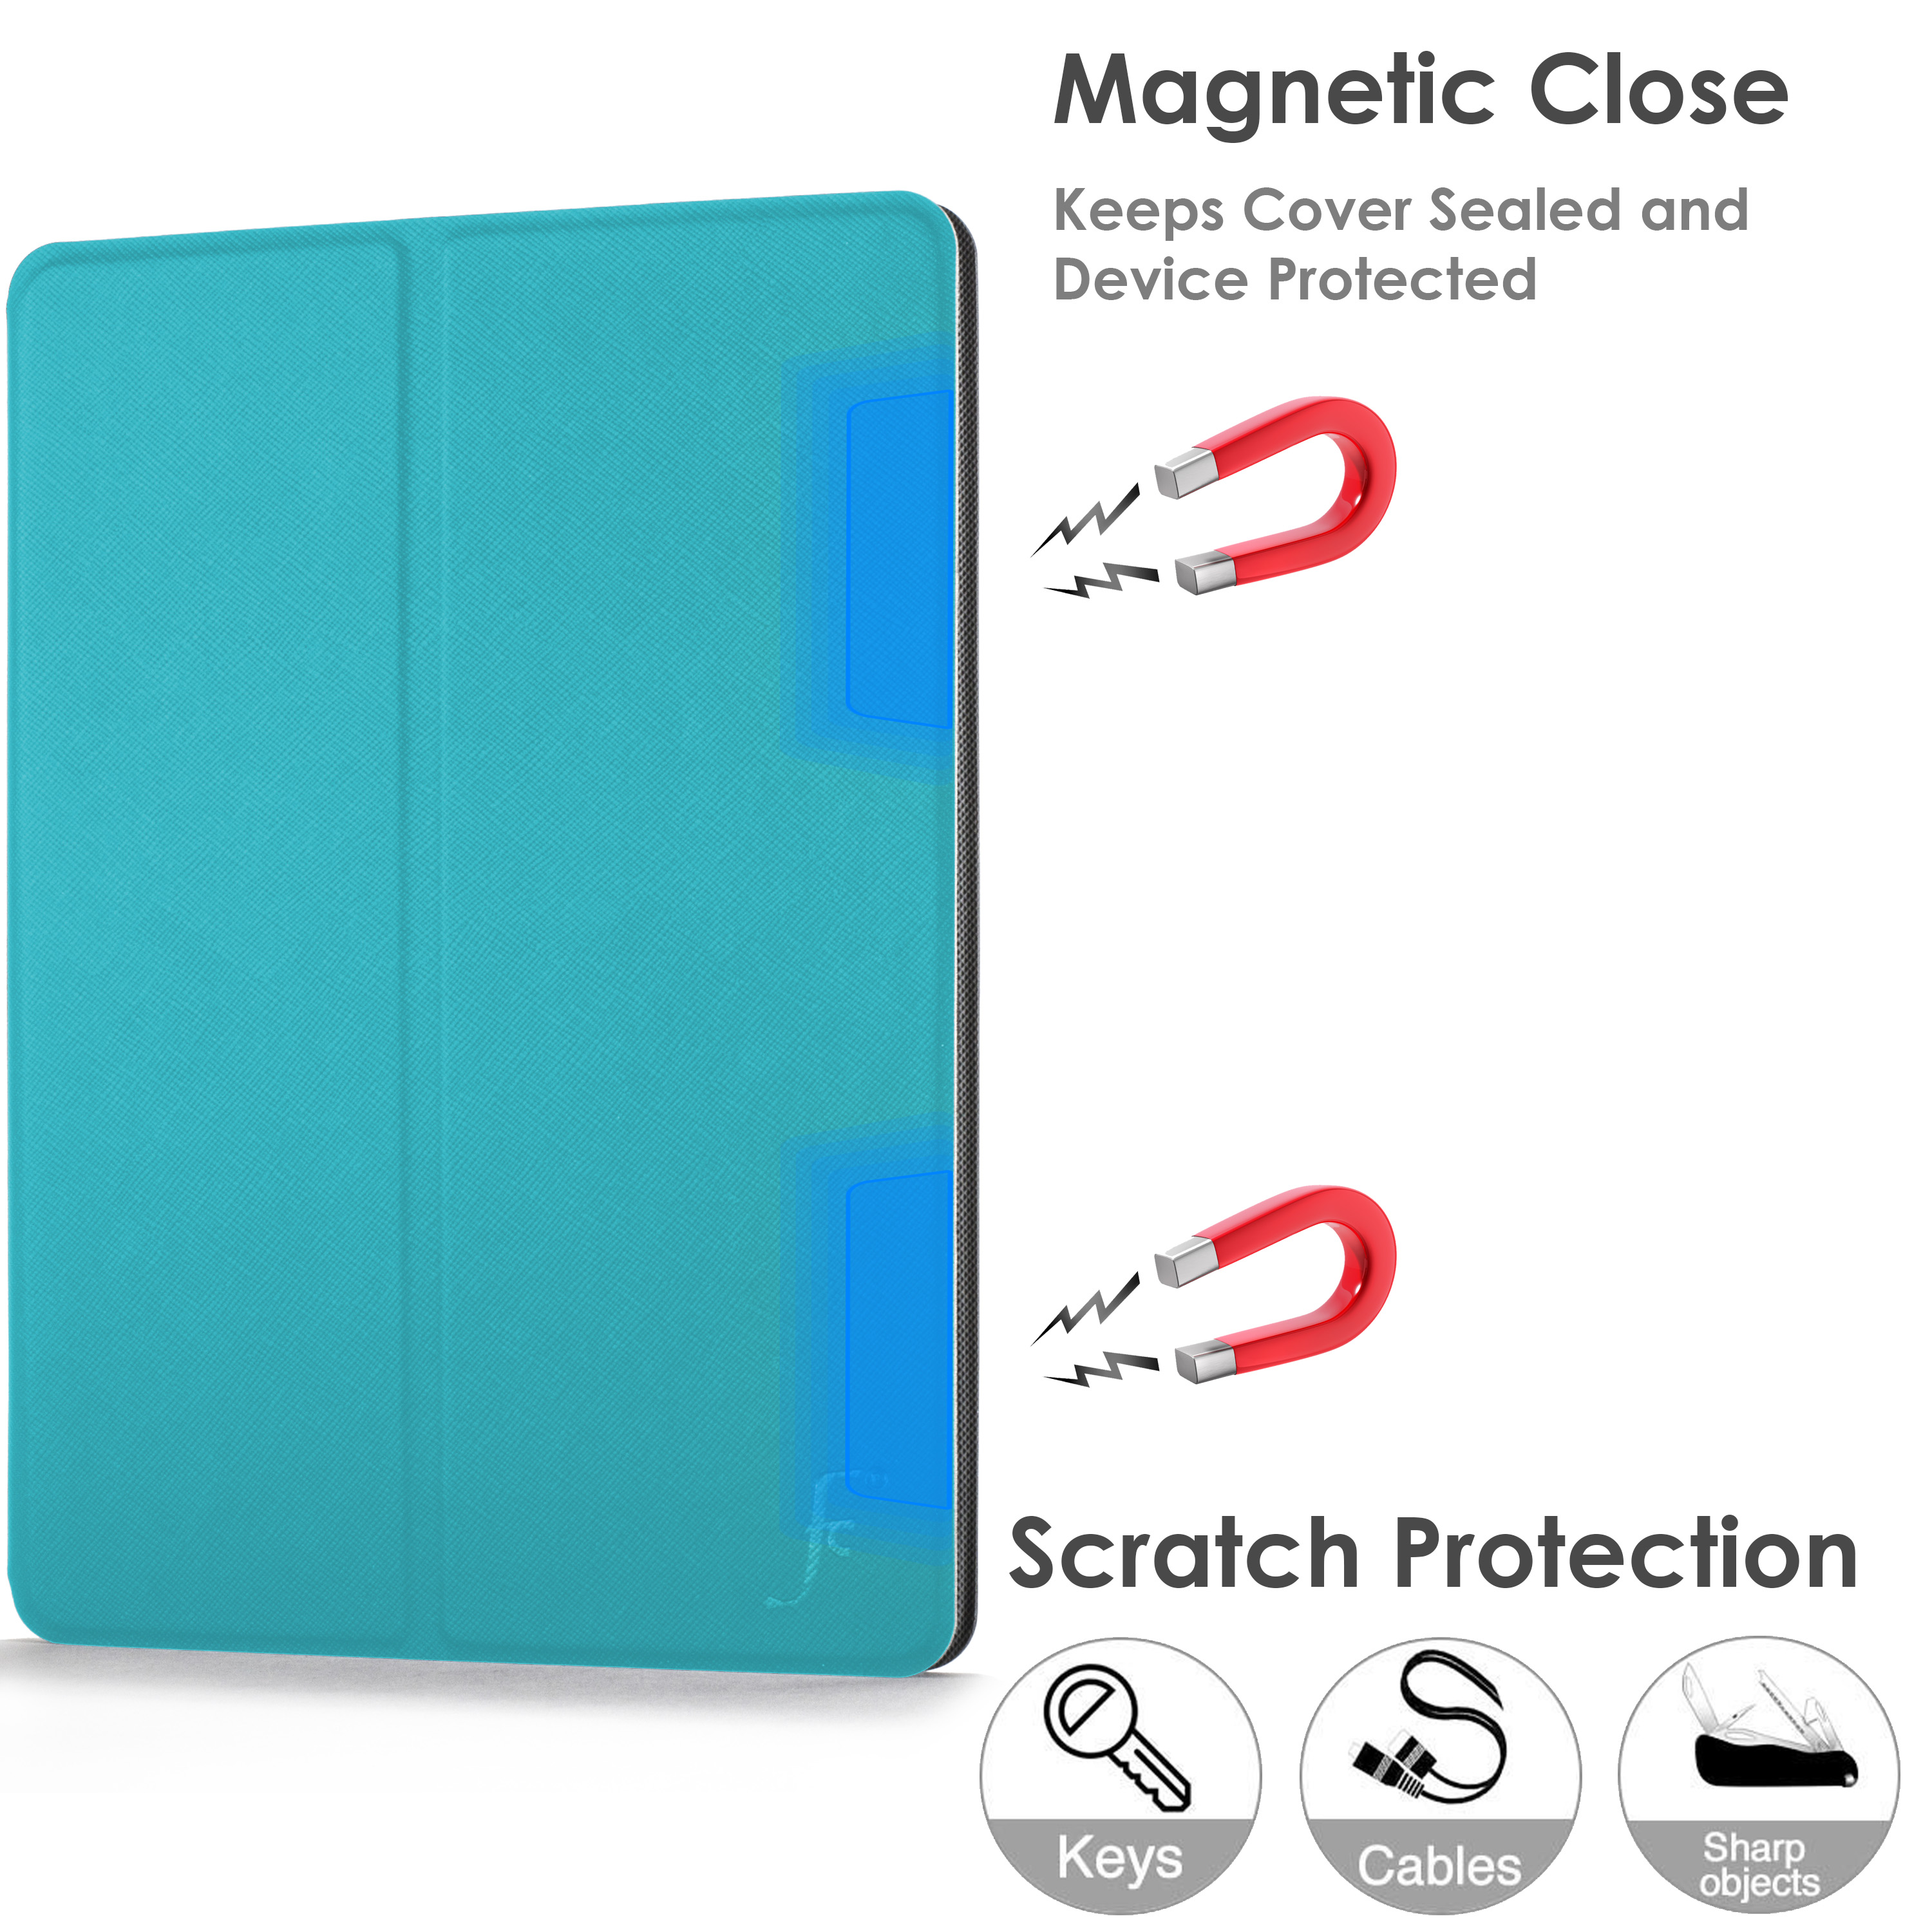 miniature 95 - Samsung Galaxy Tab A 10.1 2019 Étui Magnétique Protection & Support + Stylet